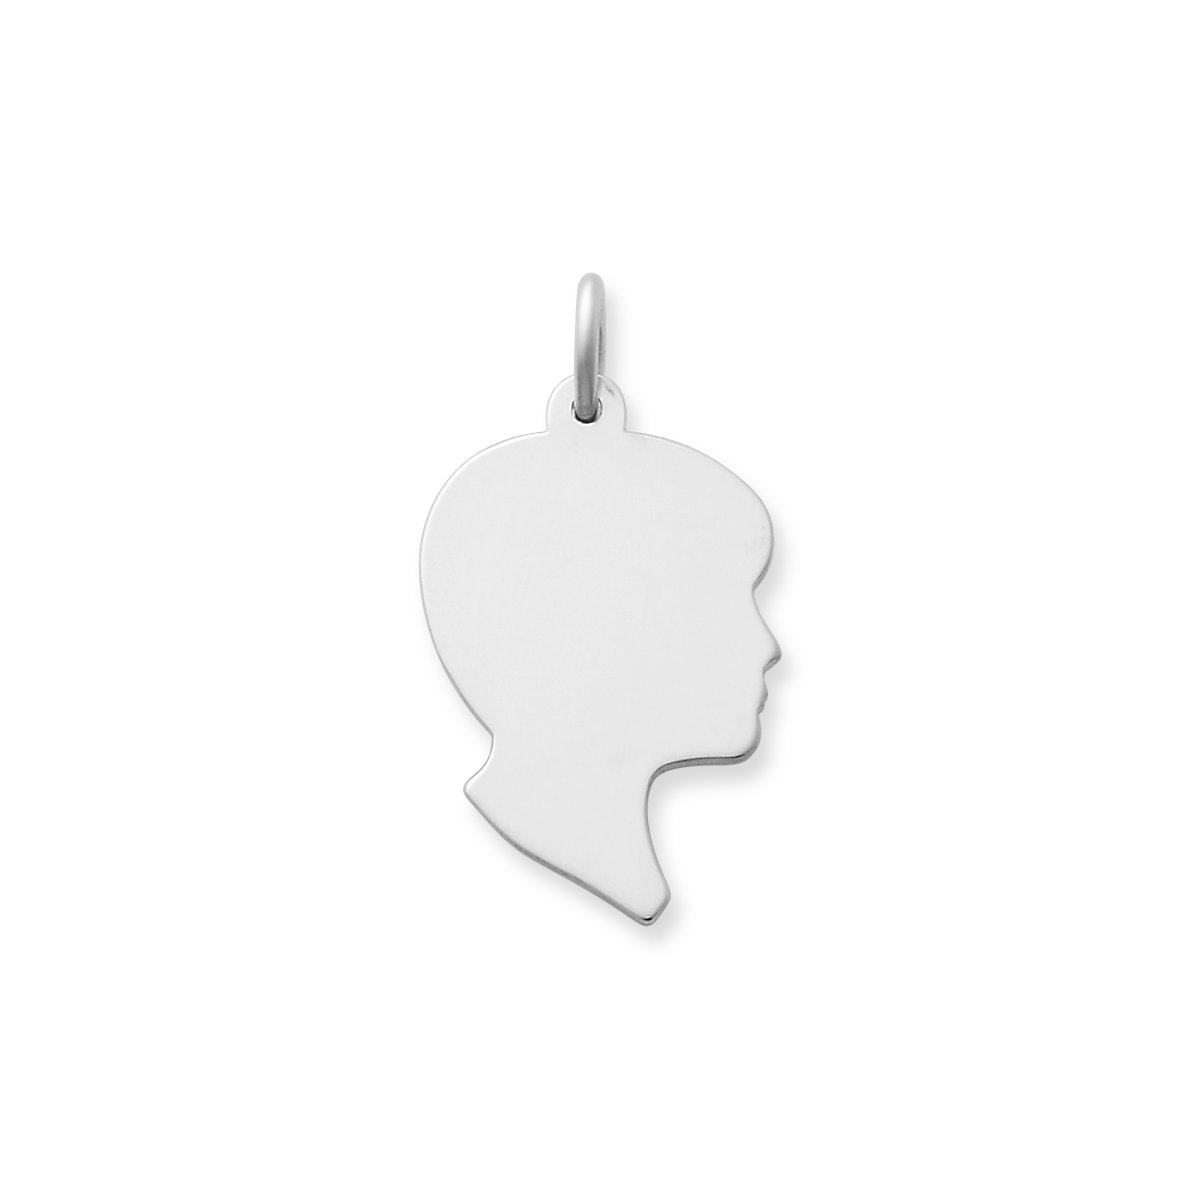 f04ab12f6 Next. View Larger Image of Boy Silhouette Charm ...